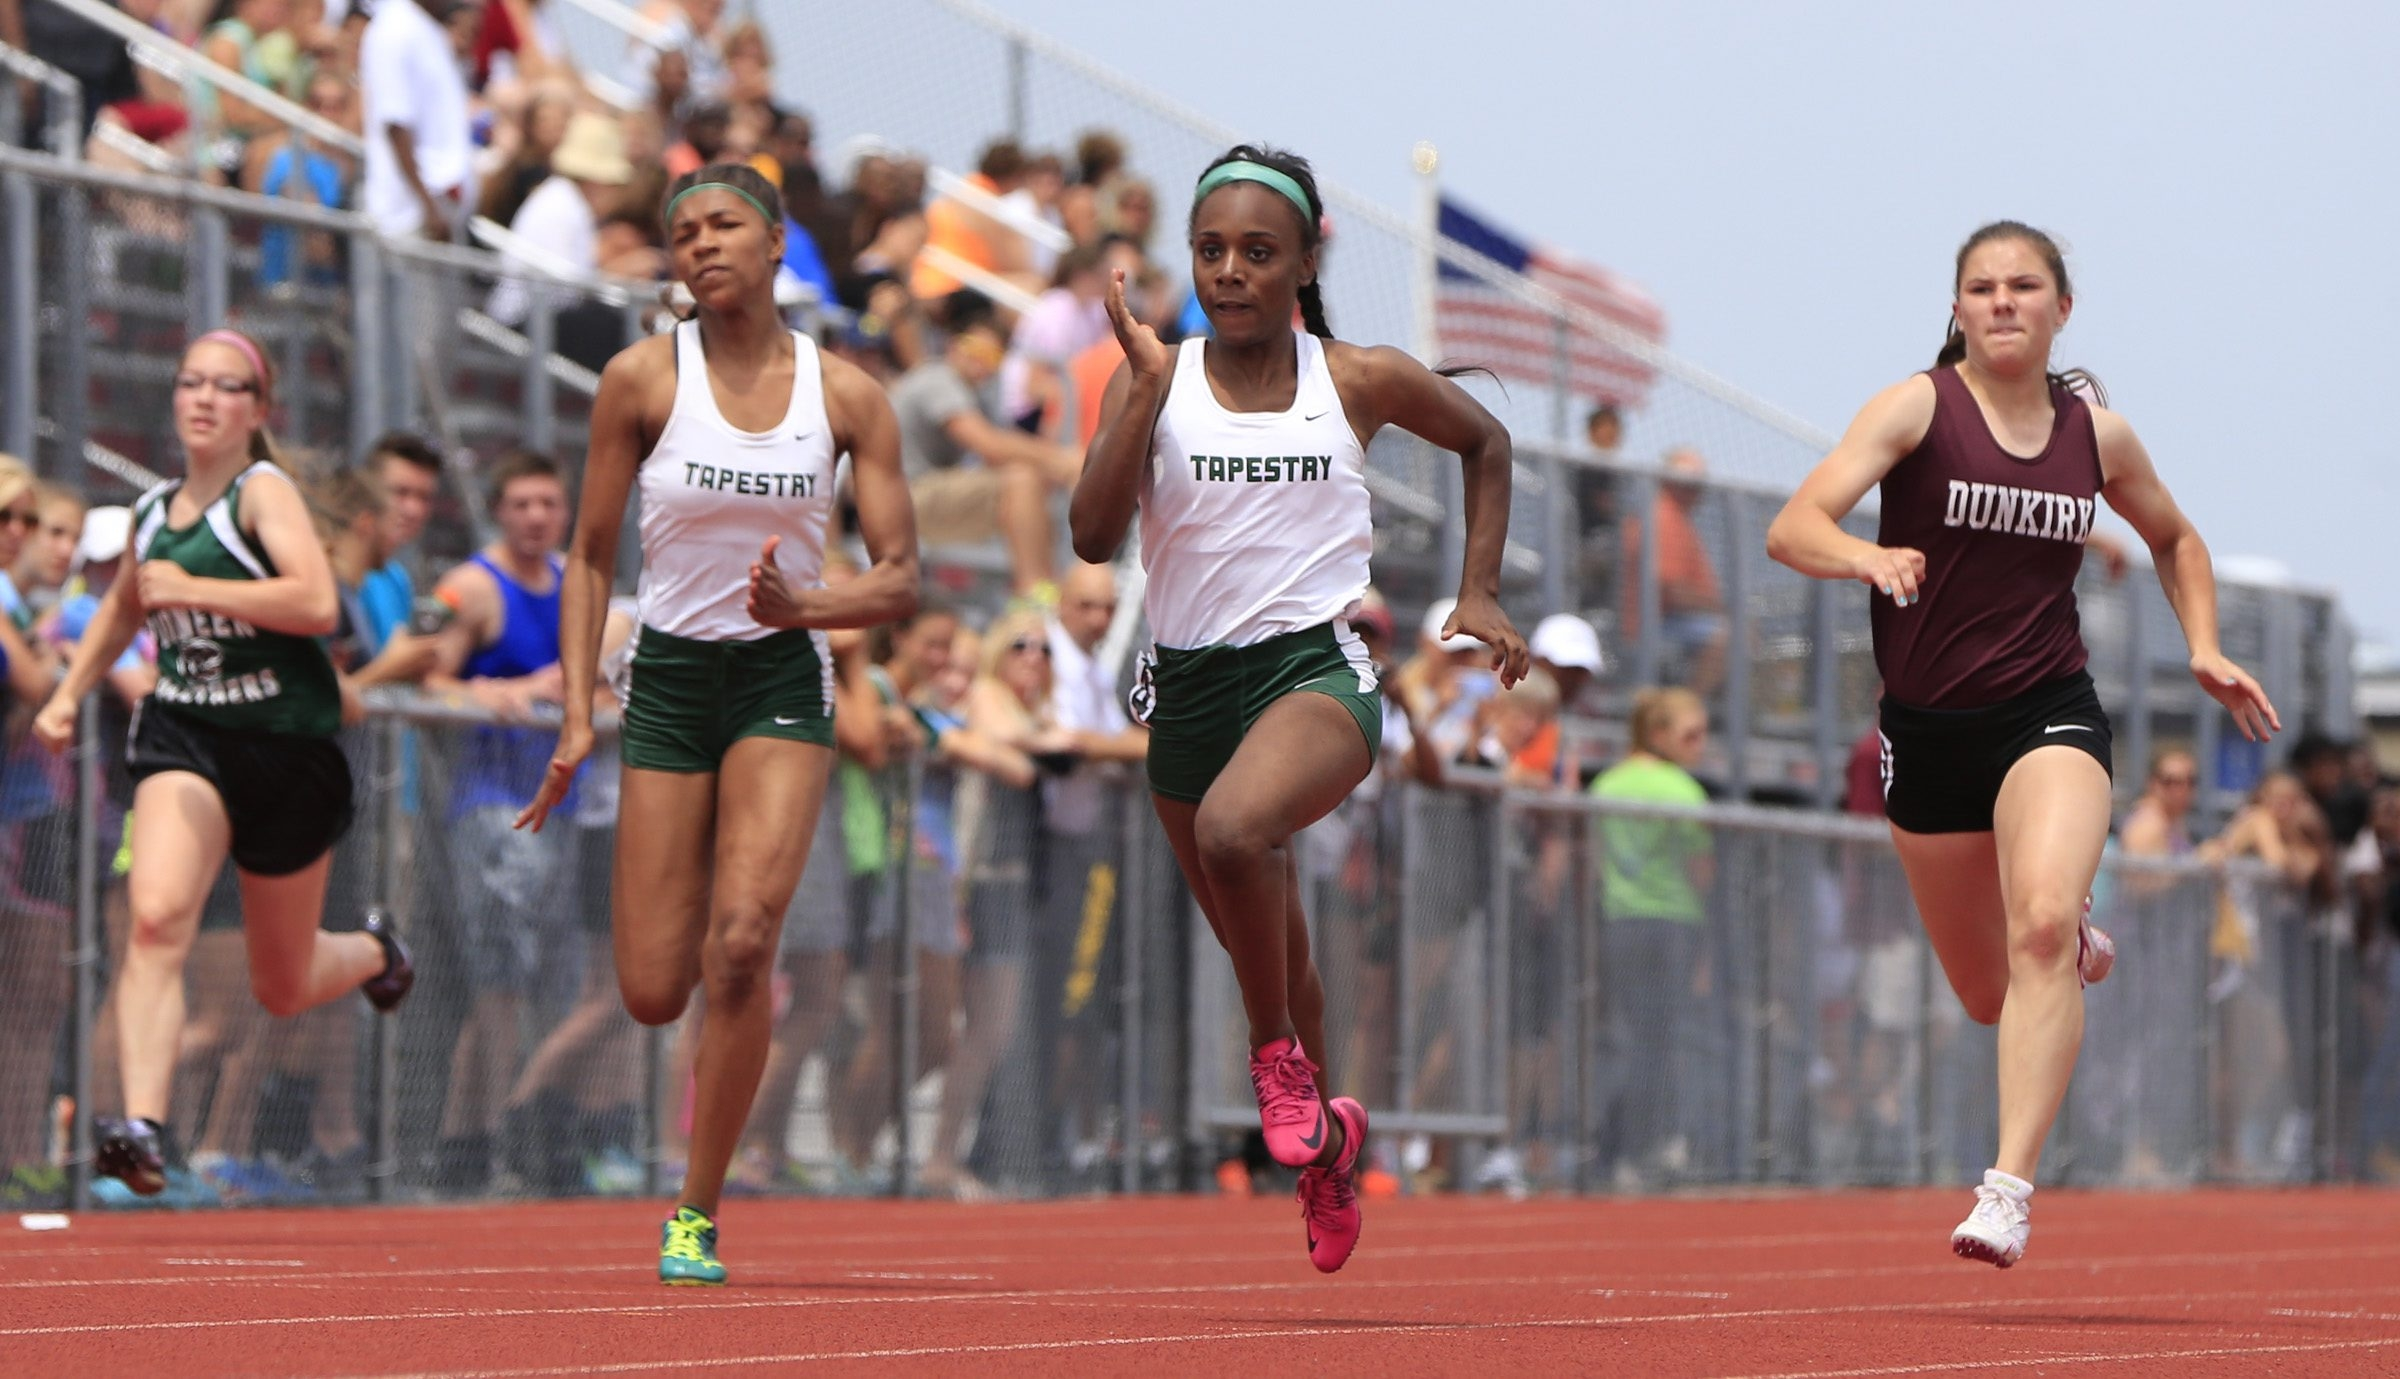 Taylor Alston from Tapestry wins the first heat of the 100-meter dash at the Section VI championships at Niagara-Wheatfield High School Friday.